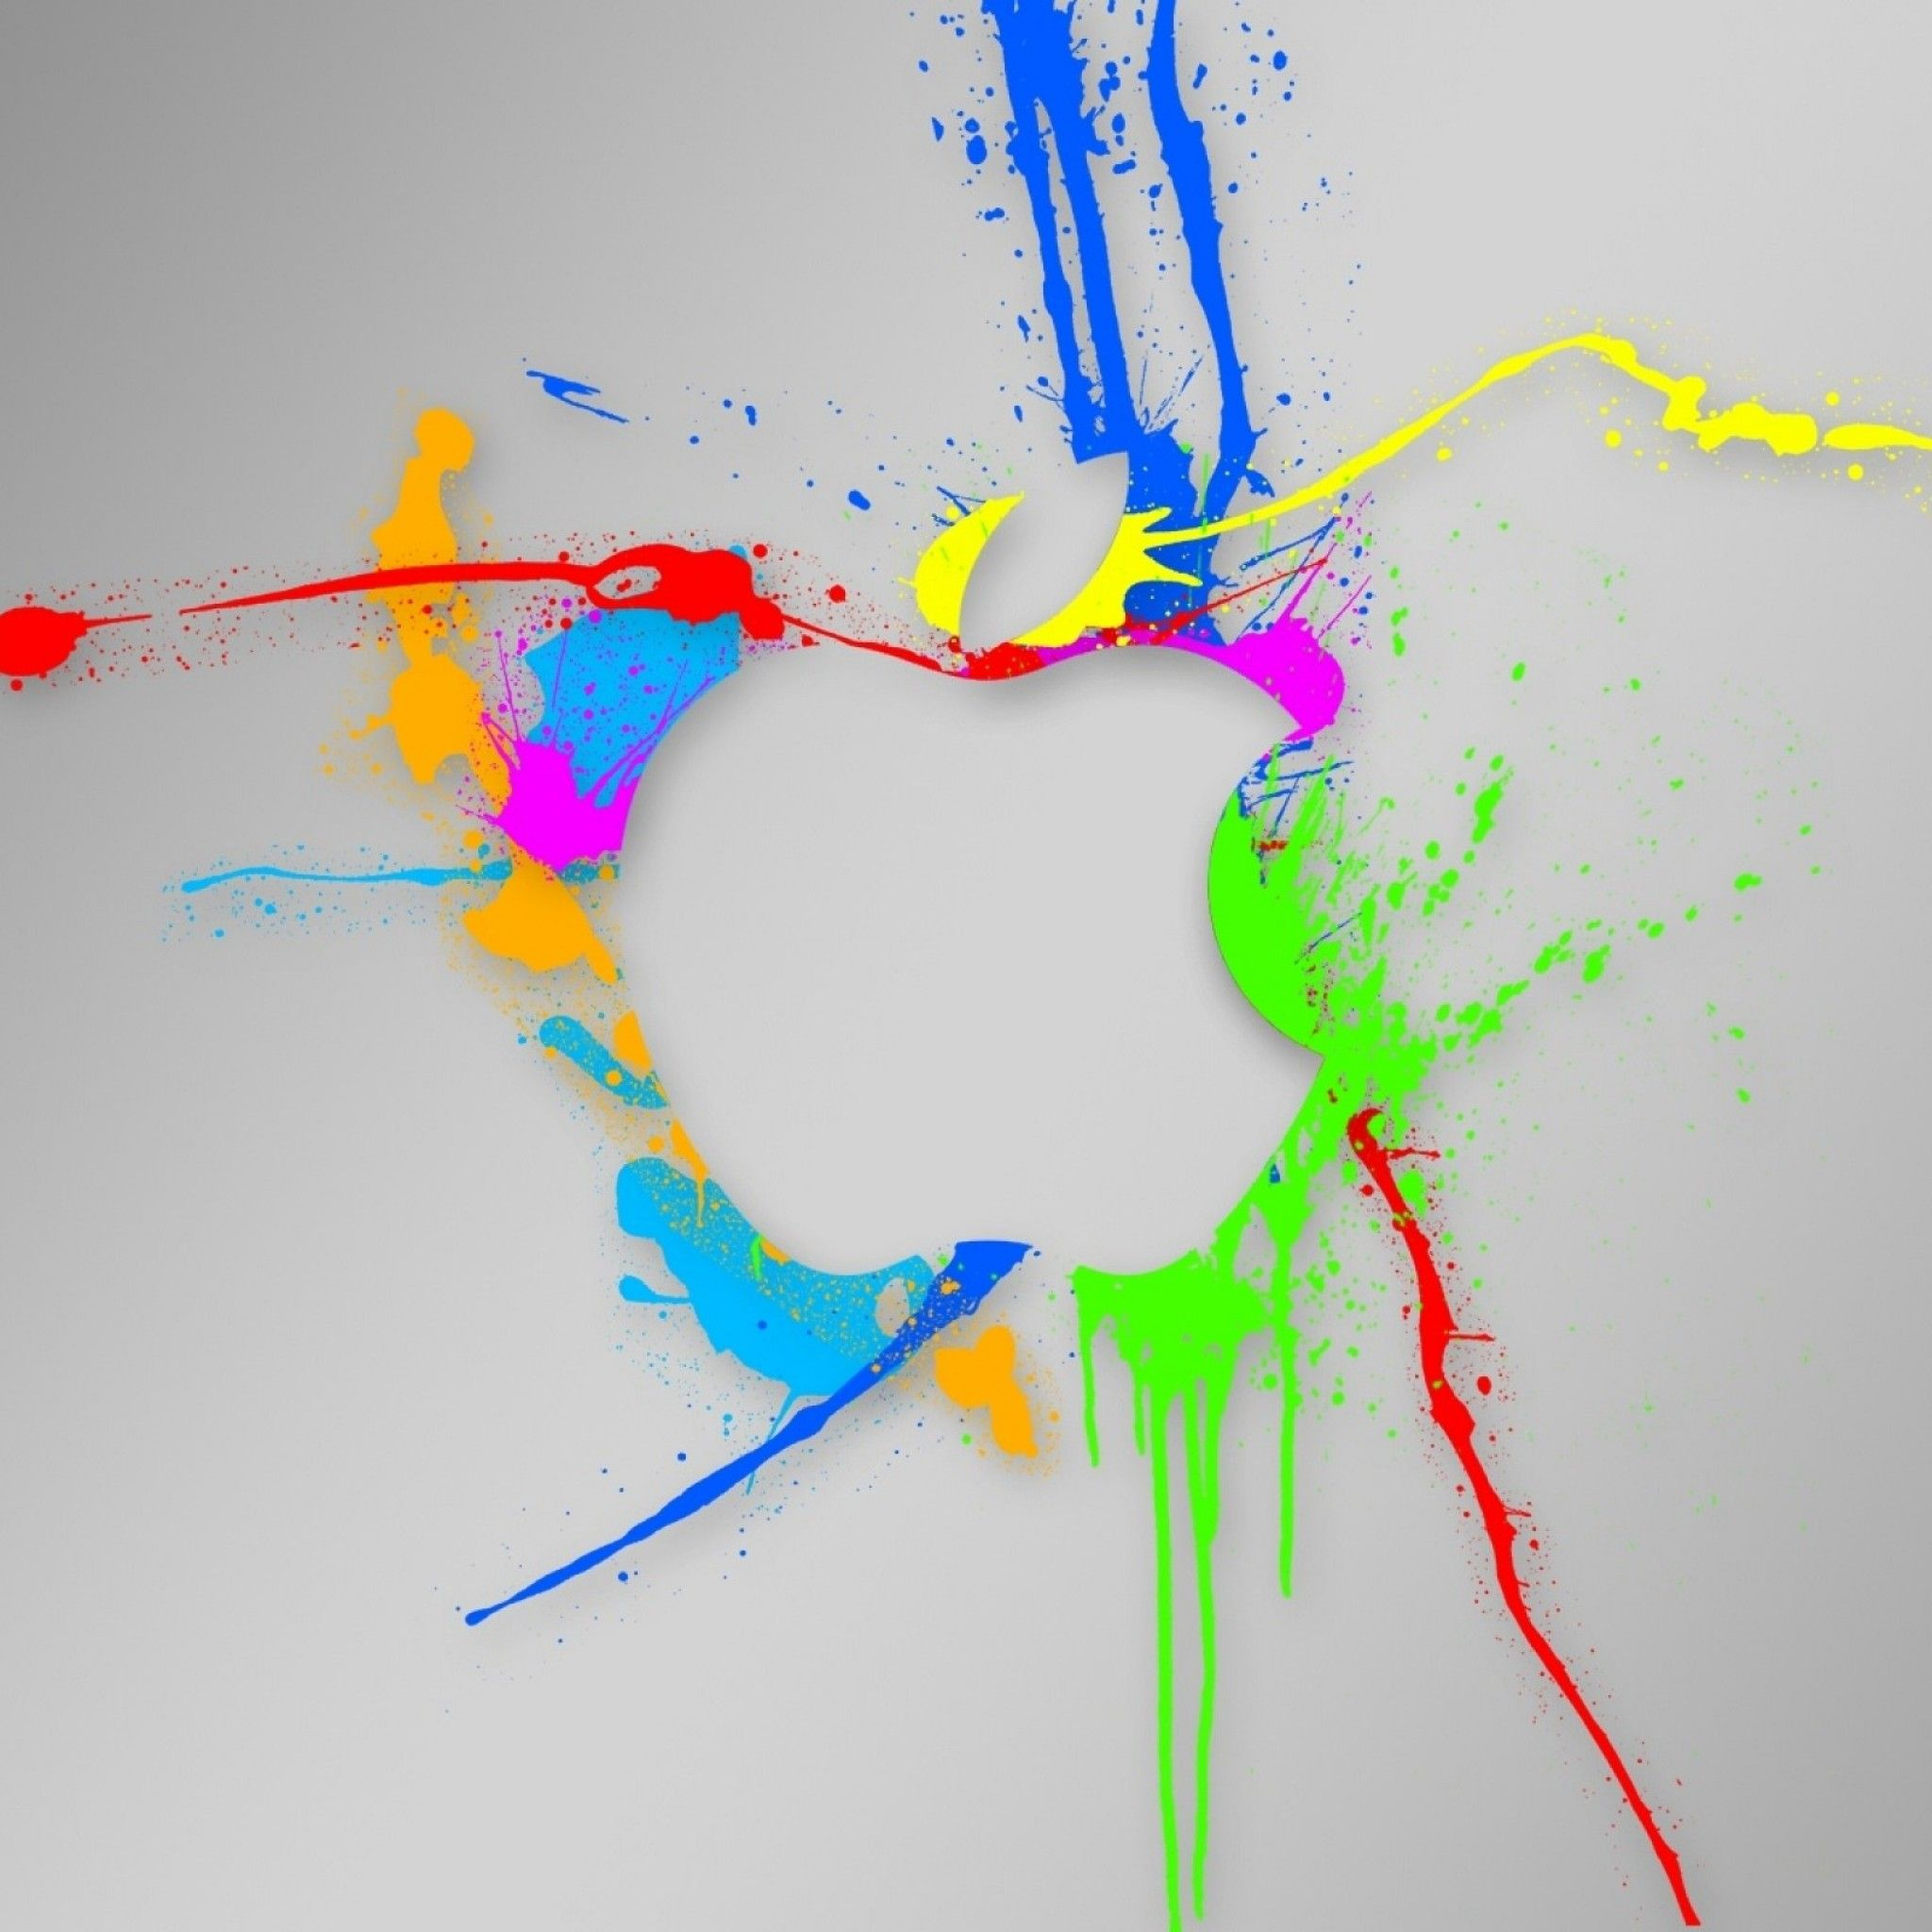 apple logo paint splash ipad wallpaper hd | ipad wallpaper